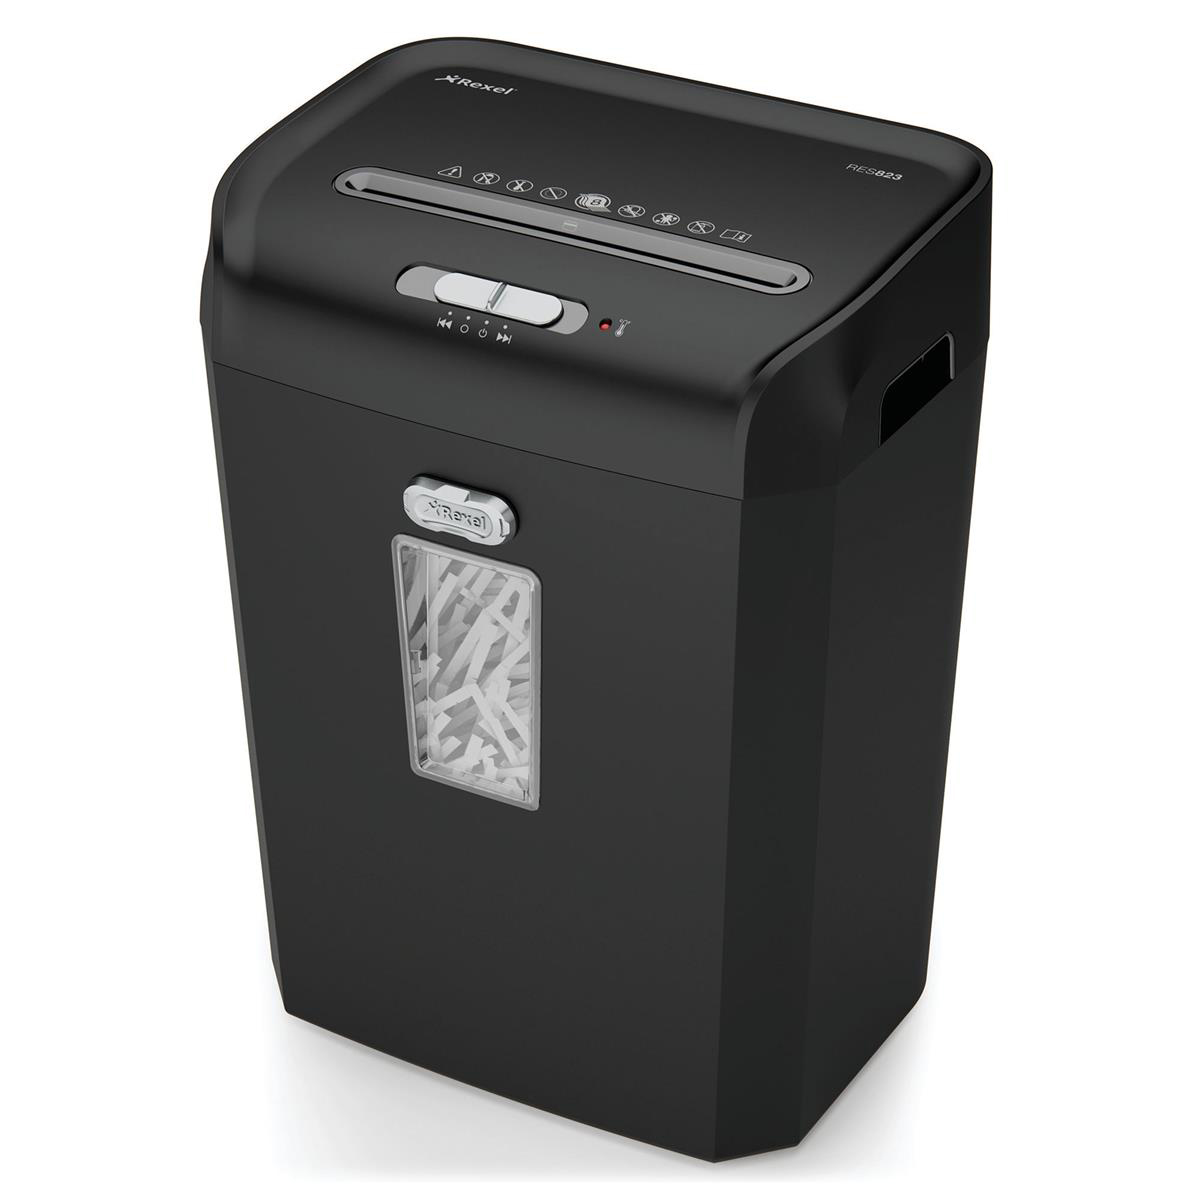 Rexel Promax REX823 Personal Shredder Cross Cut P-4 4x35mm Black/Grey Ref 1758055A